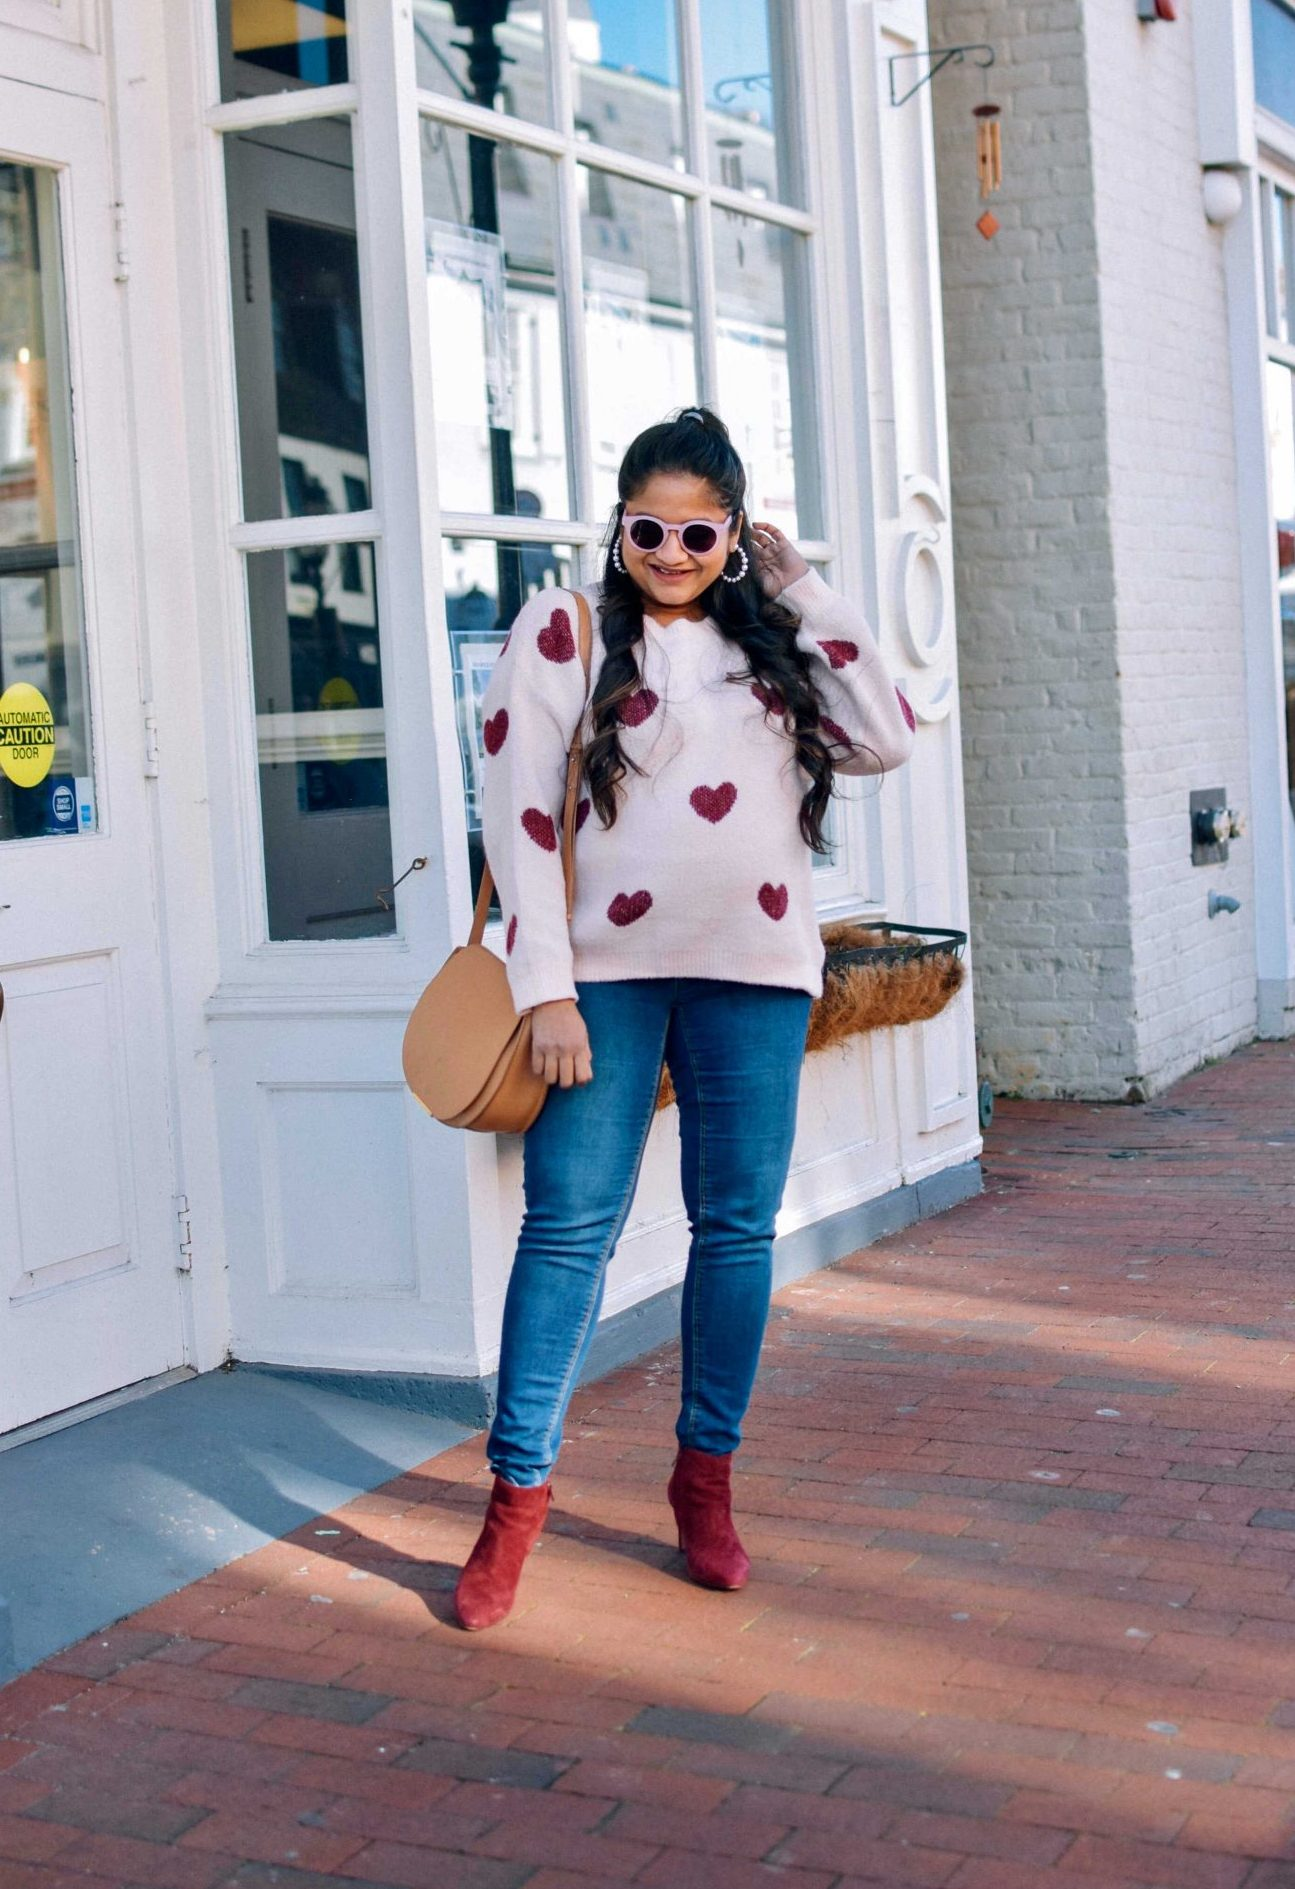 pregnancy Valentines day outfit-wearing pinklilly fuzzy Heart Pink Sweater, mango maternity jeans, Cuyana saddle bag, Illesteva pink sunglasses, Burgundy booties |Valentine's Day Maternity Outfit by popular Maryland modest fashion blog, Dreaming Loud: image of a pregnant woman wearing a heart print sweater, maternity skinny jeans, and red suede ankle boots.